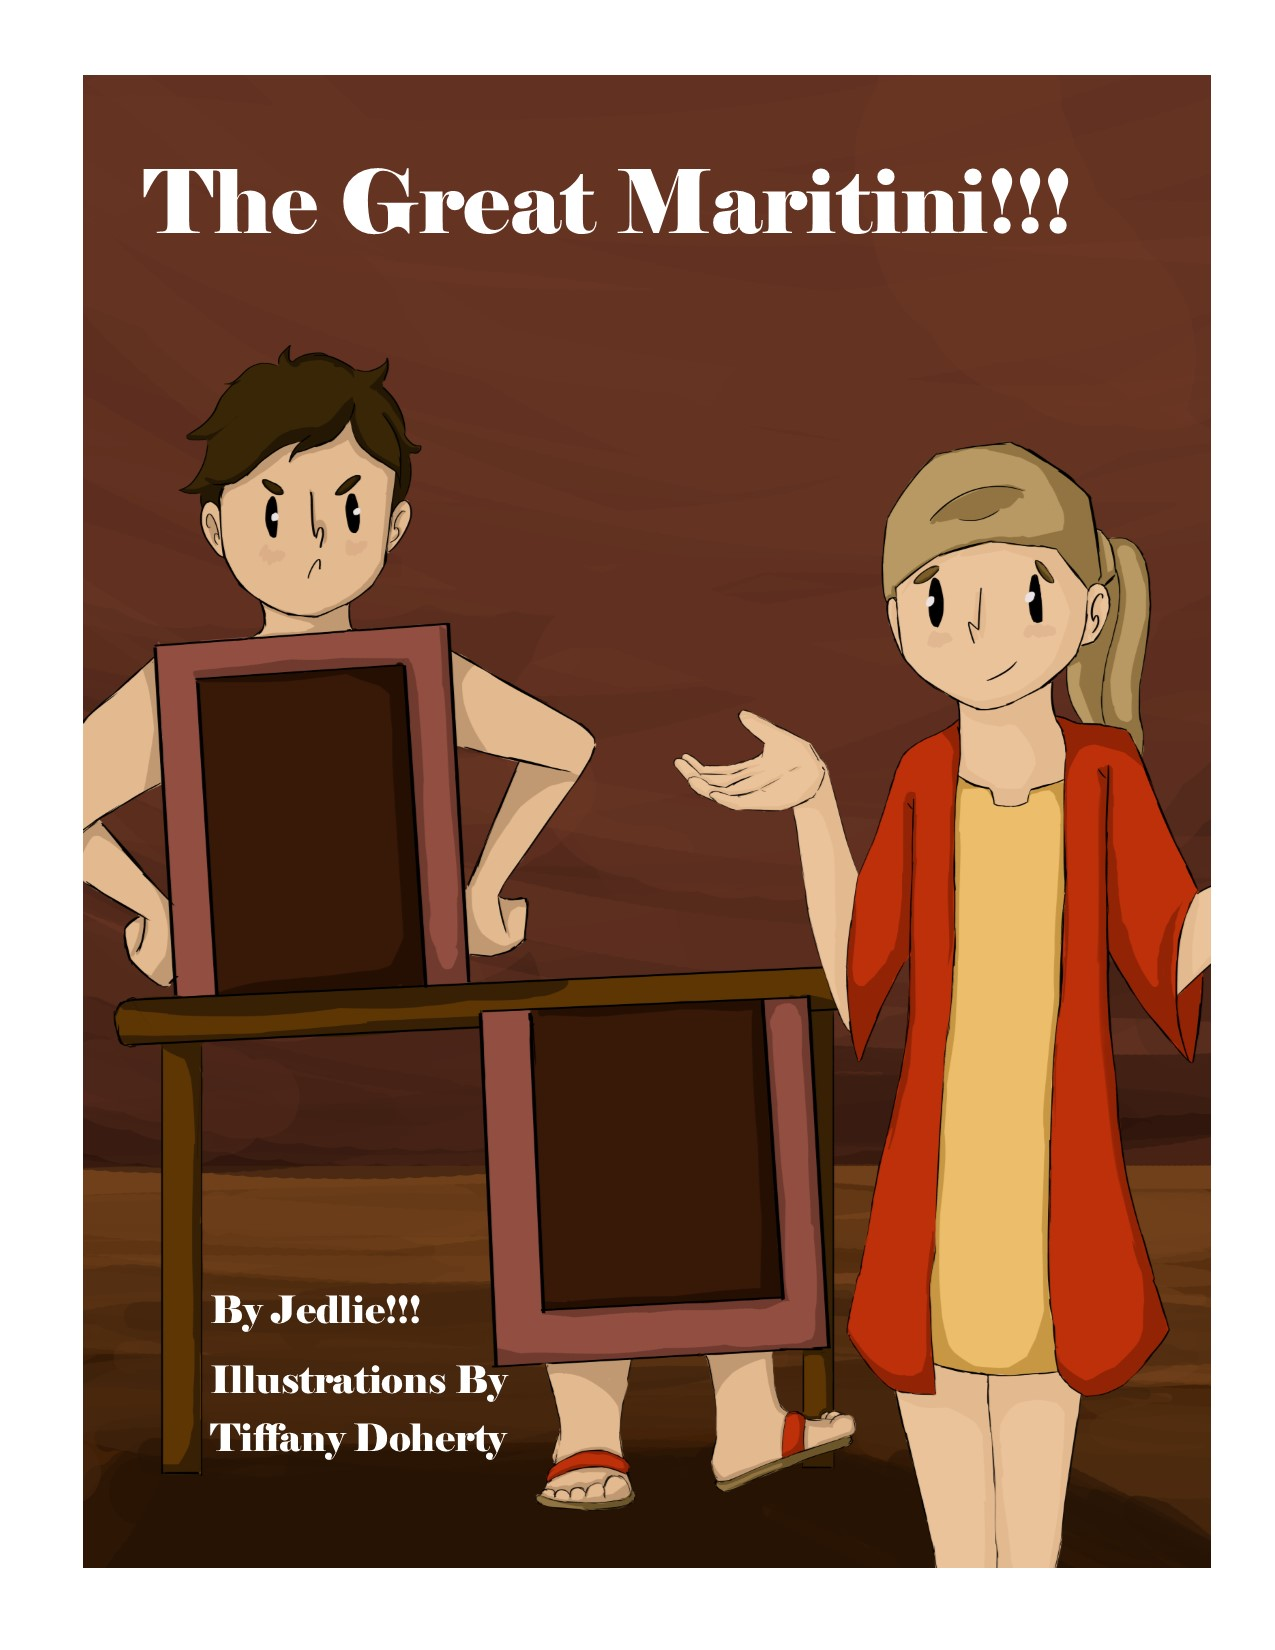 The Great Maritini Teaches Kindness to Children!